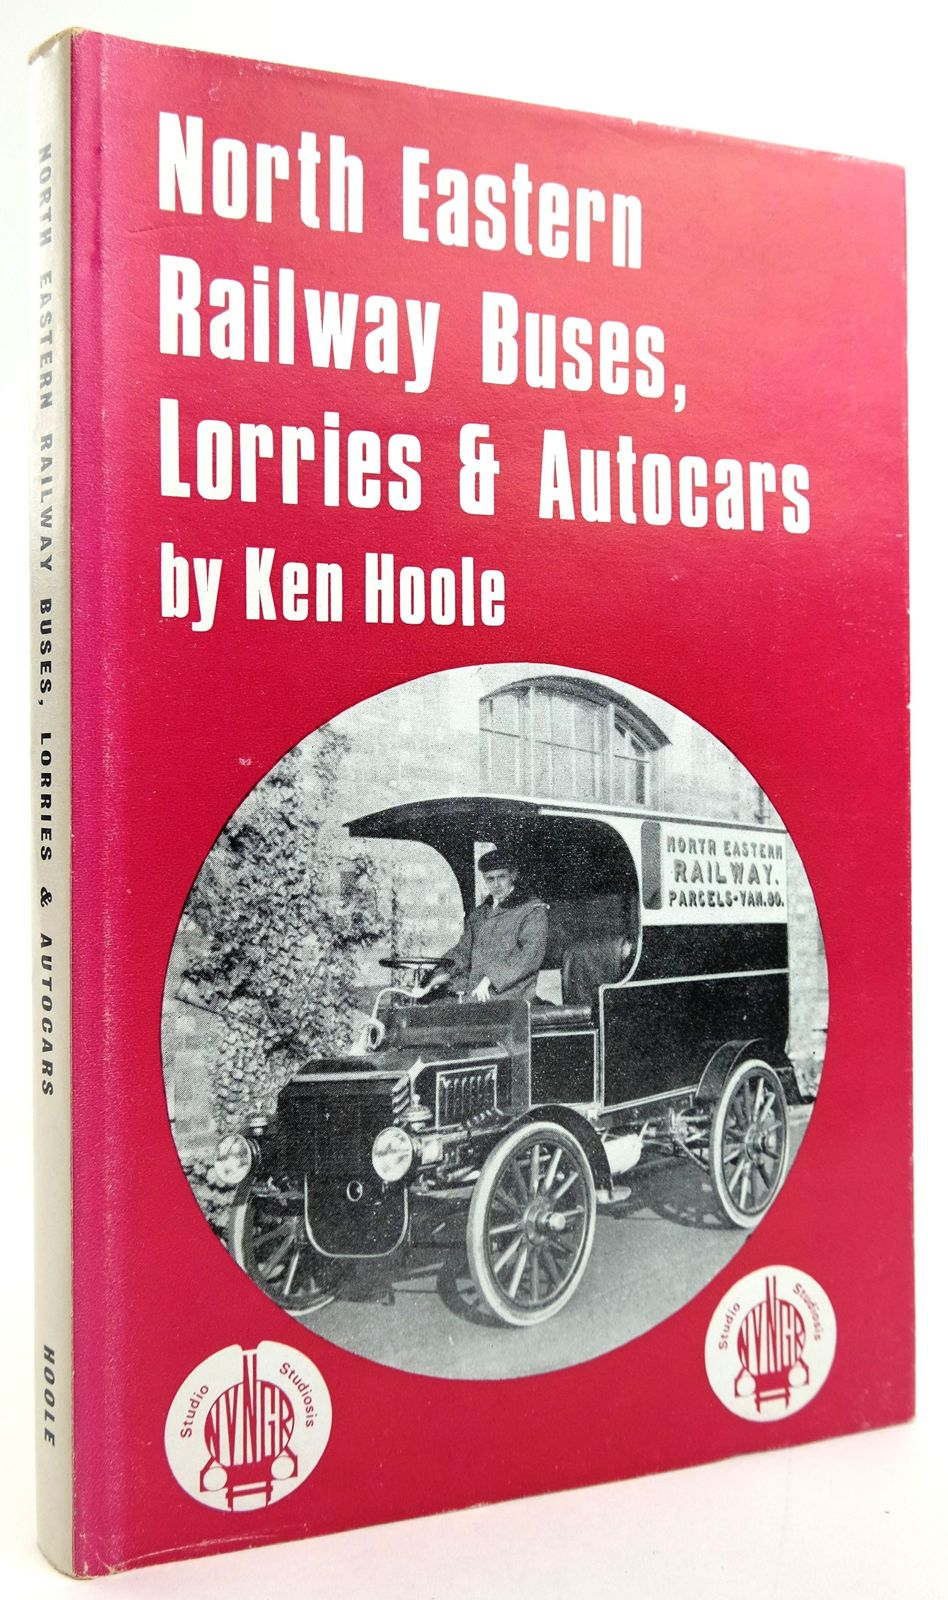 Photo of NORTH EASTERN RAILWAY BUSES, LORRIES & AUTOCARS written by Hoole, Ken published by Nidd Valley Narrow Gauge Railways Ltd. (STOCK CODE: 1820004)  for sale by Stella & Rose's Books